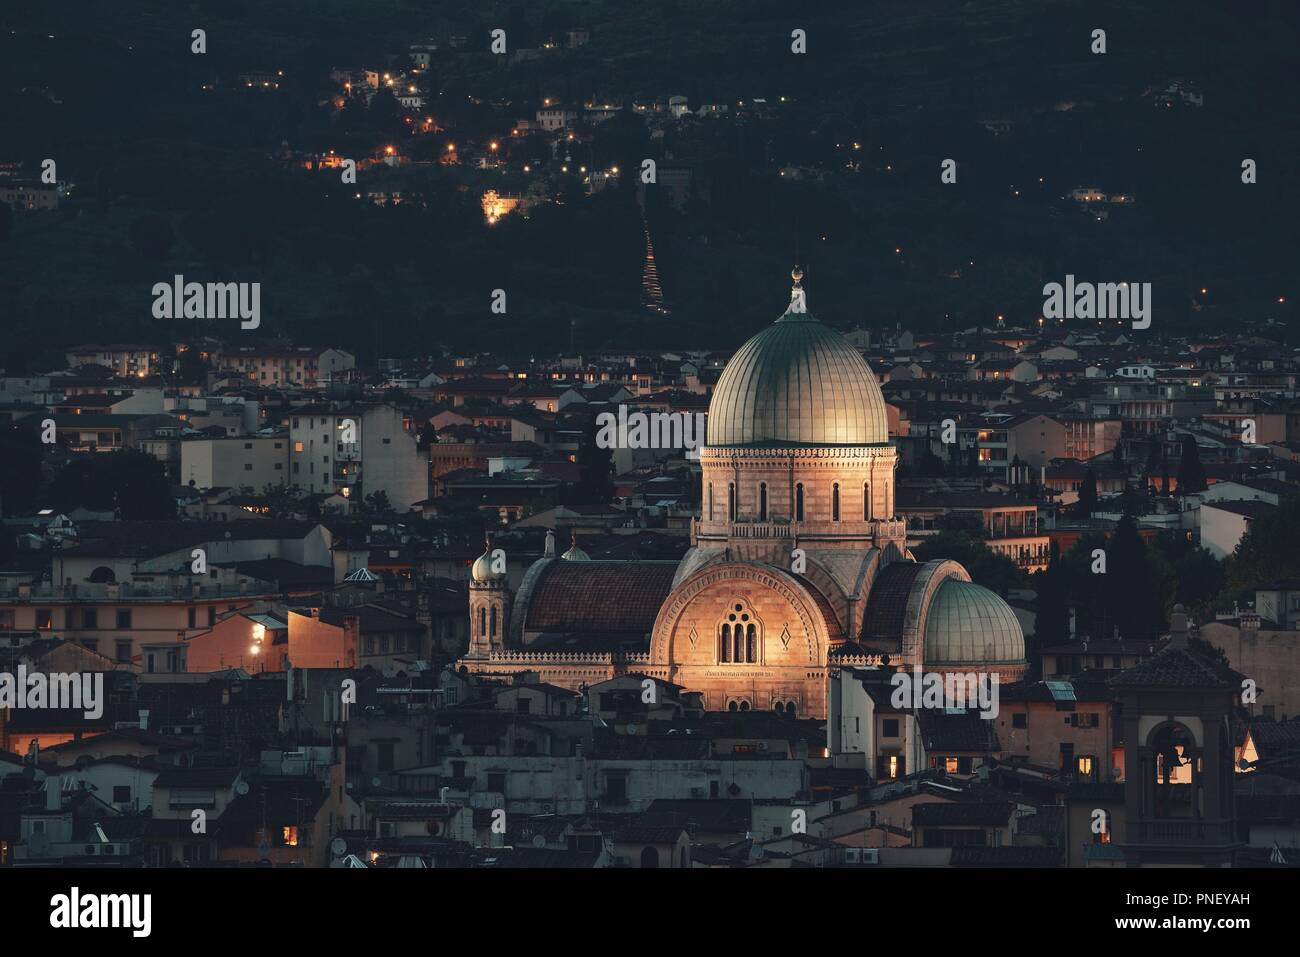 Great Synagogue of Florence or Tempio Maggiore among buildings at night. Italy. Stock Photo